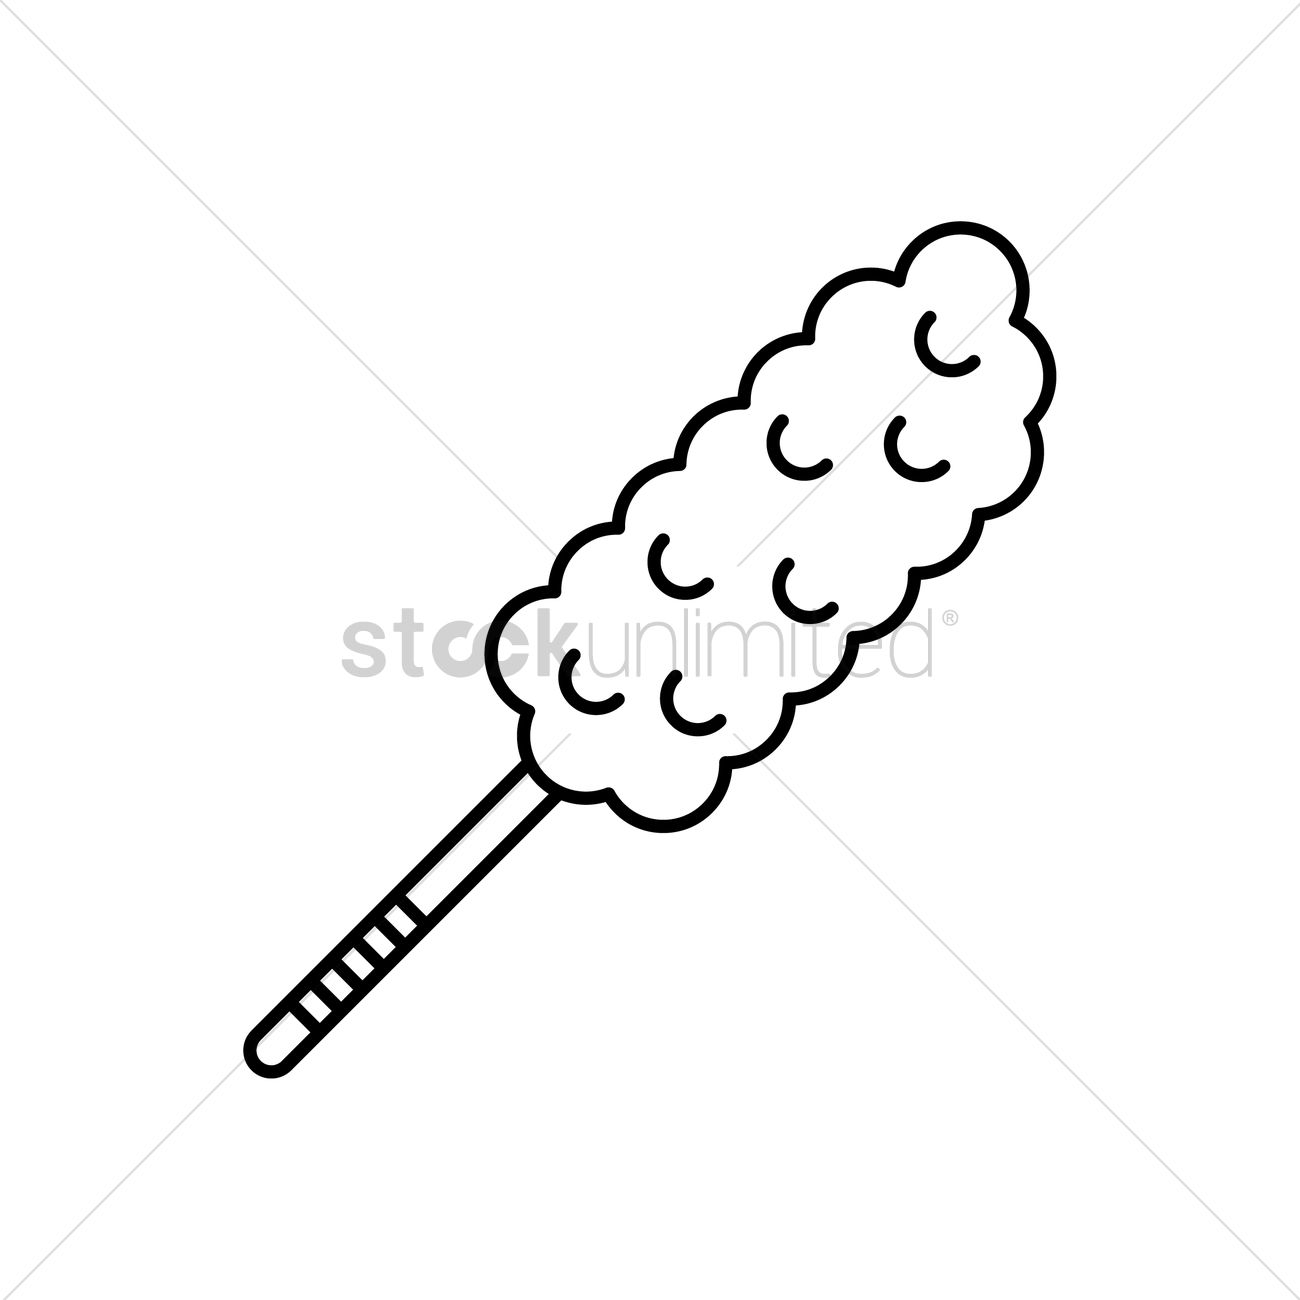 Feather duster clipart 6 » Clipart Station.